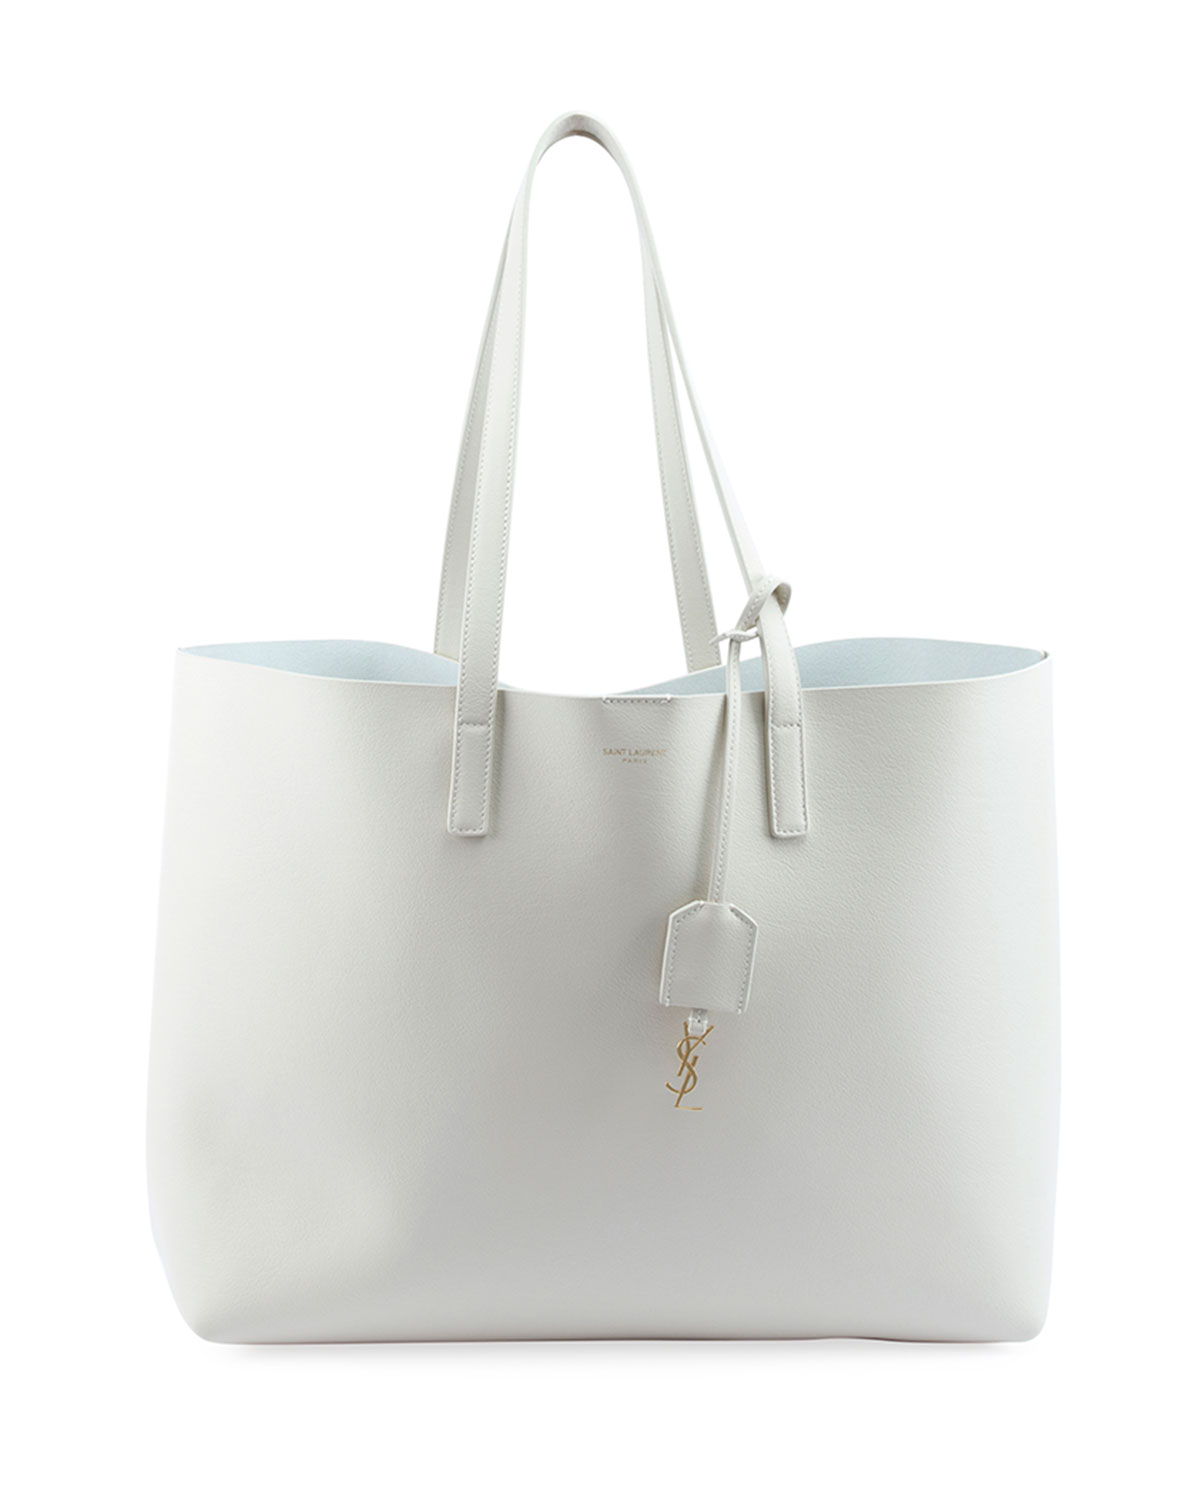 Large Leather Shopping Tote Bag, White - Saint Laurent